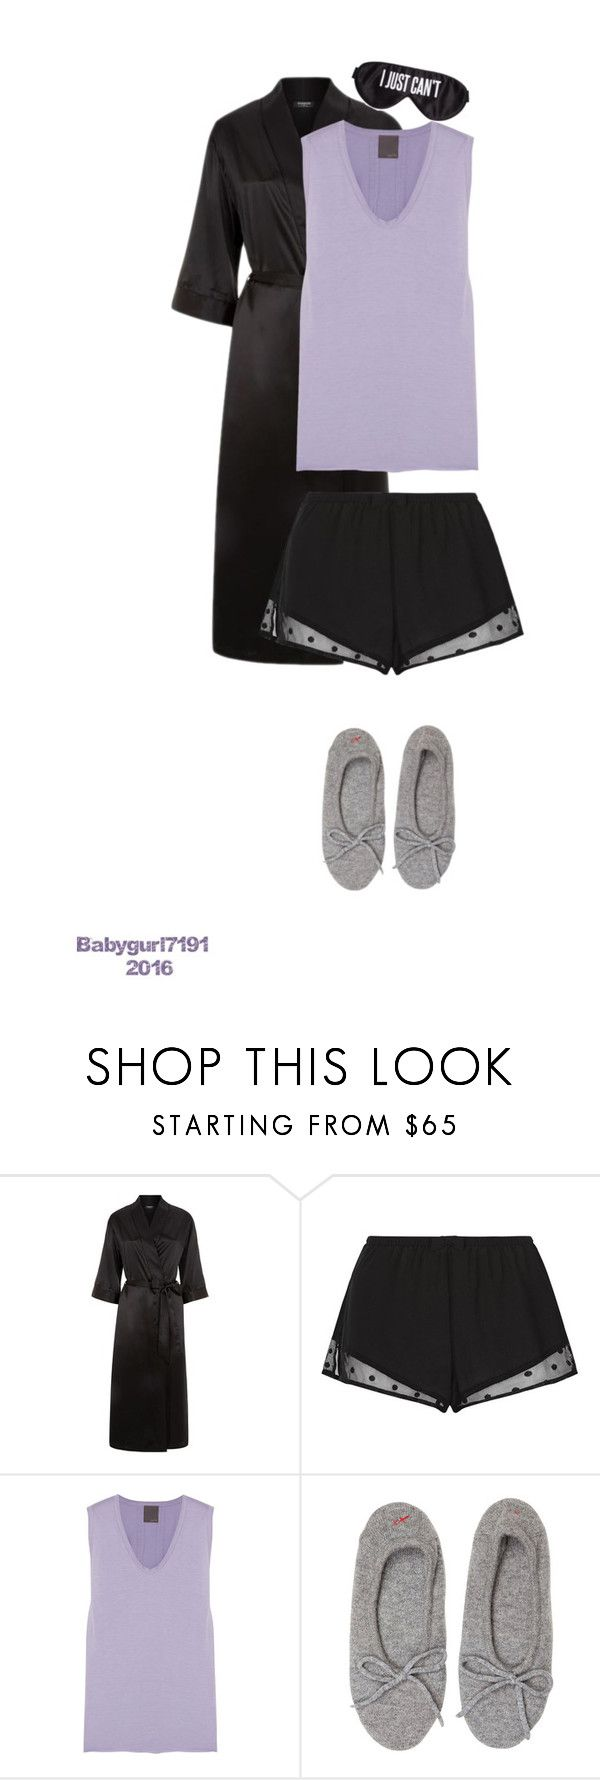 """""""Sleep Time"""" by babygurl7191 ❤ liked on Polyvore featuring Harrods, Princesse tam.tam, Lot78, Banjo & Matilda and Perpetual Shade"""